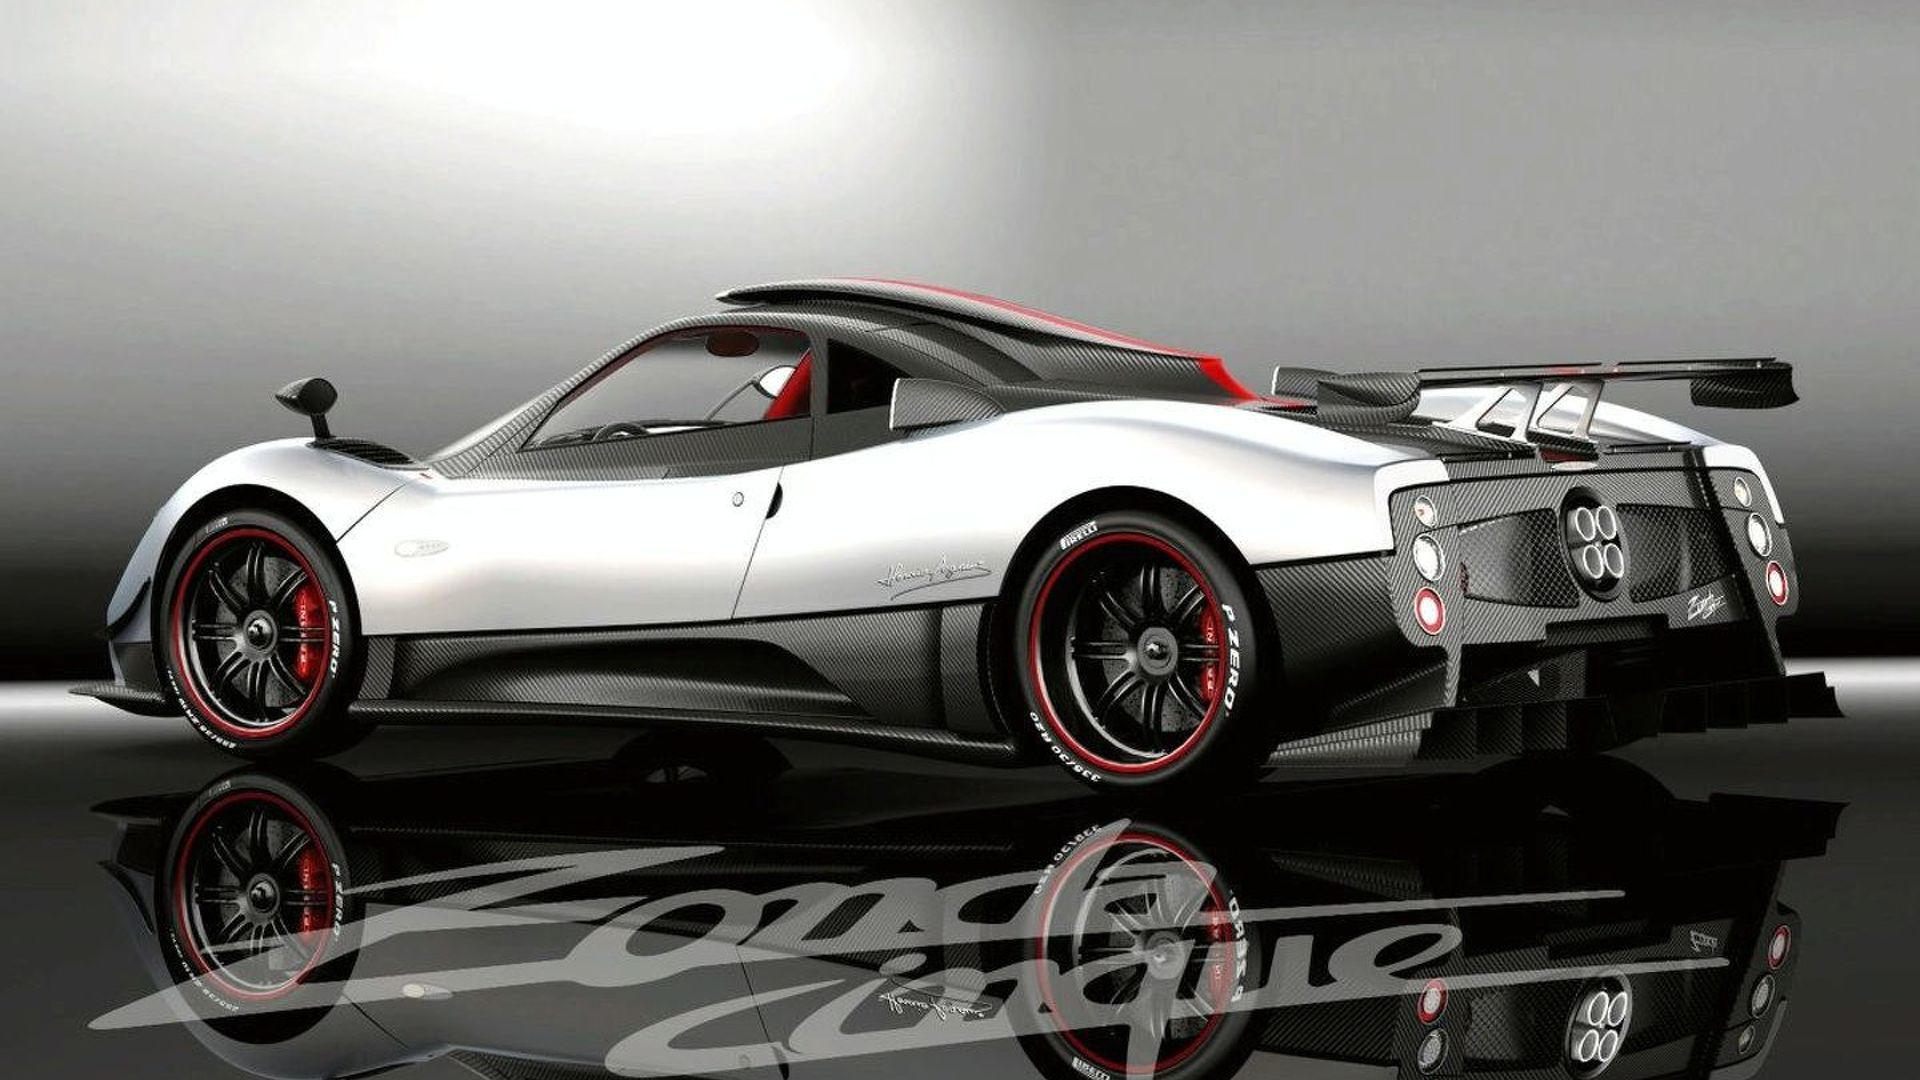 One off pagani zonda f cinque to show in geneva one off pagani zonda f cinque to show in geneva product 2009 02 26 202429 vanachro Images